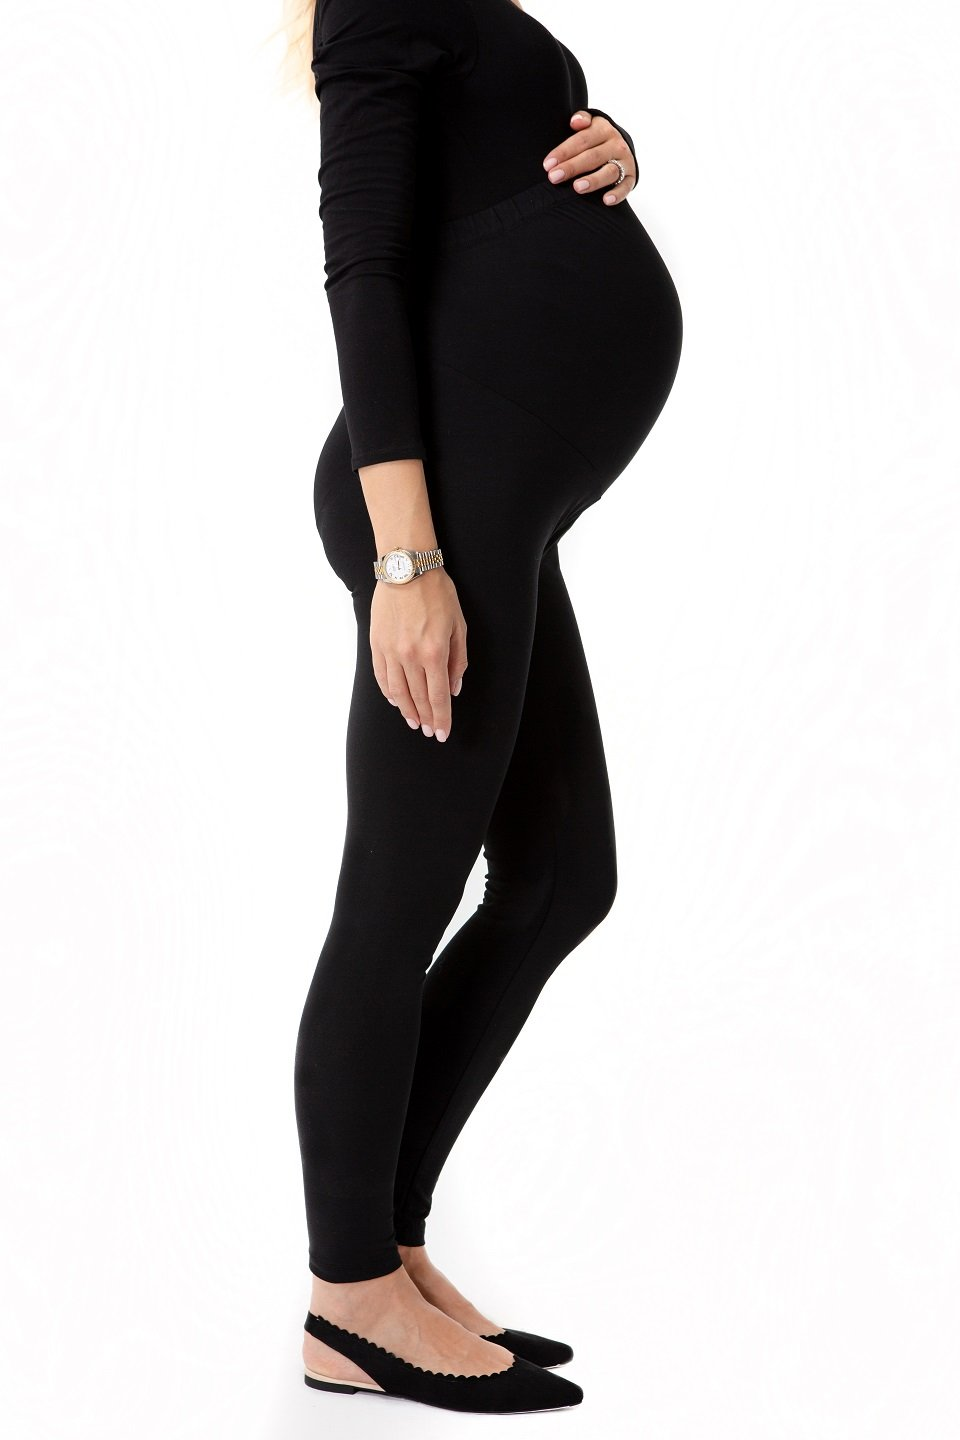 Easy Bottom for Pregnancy, Postpartum & Beyond